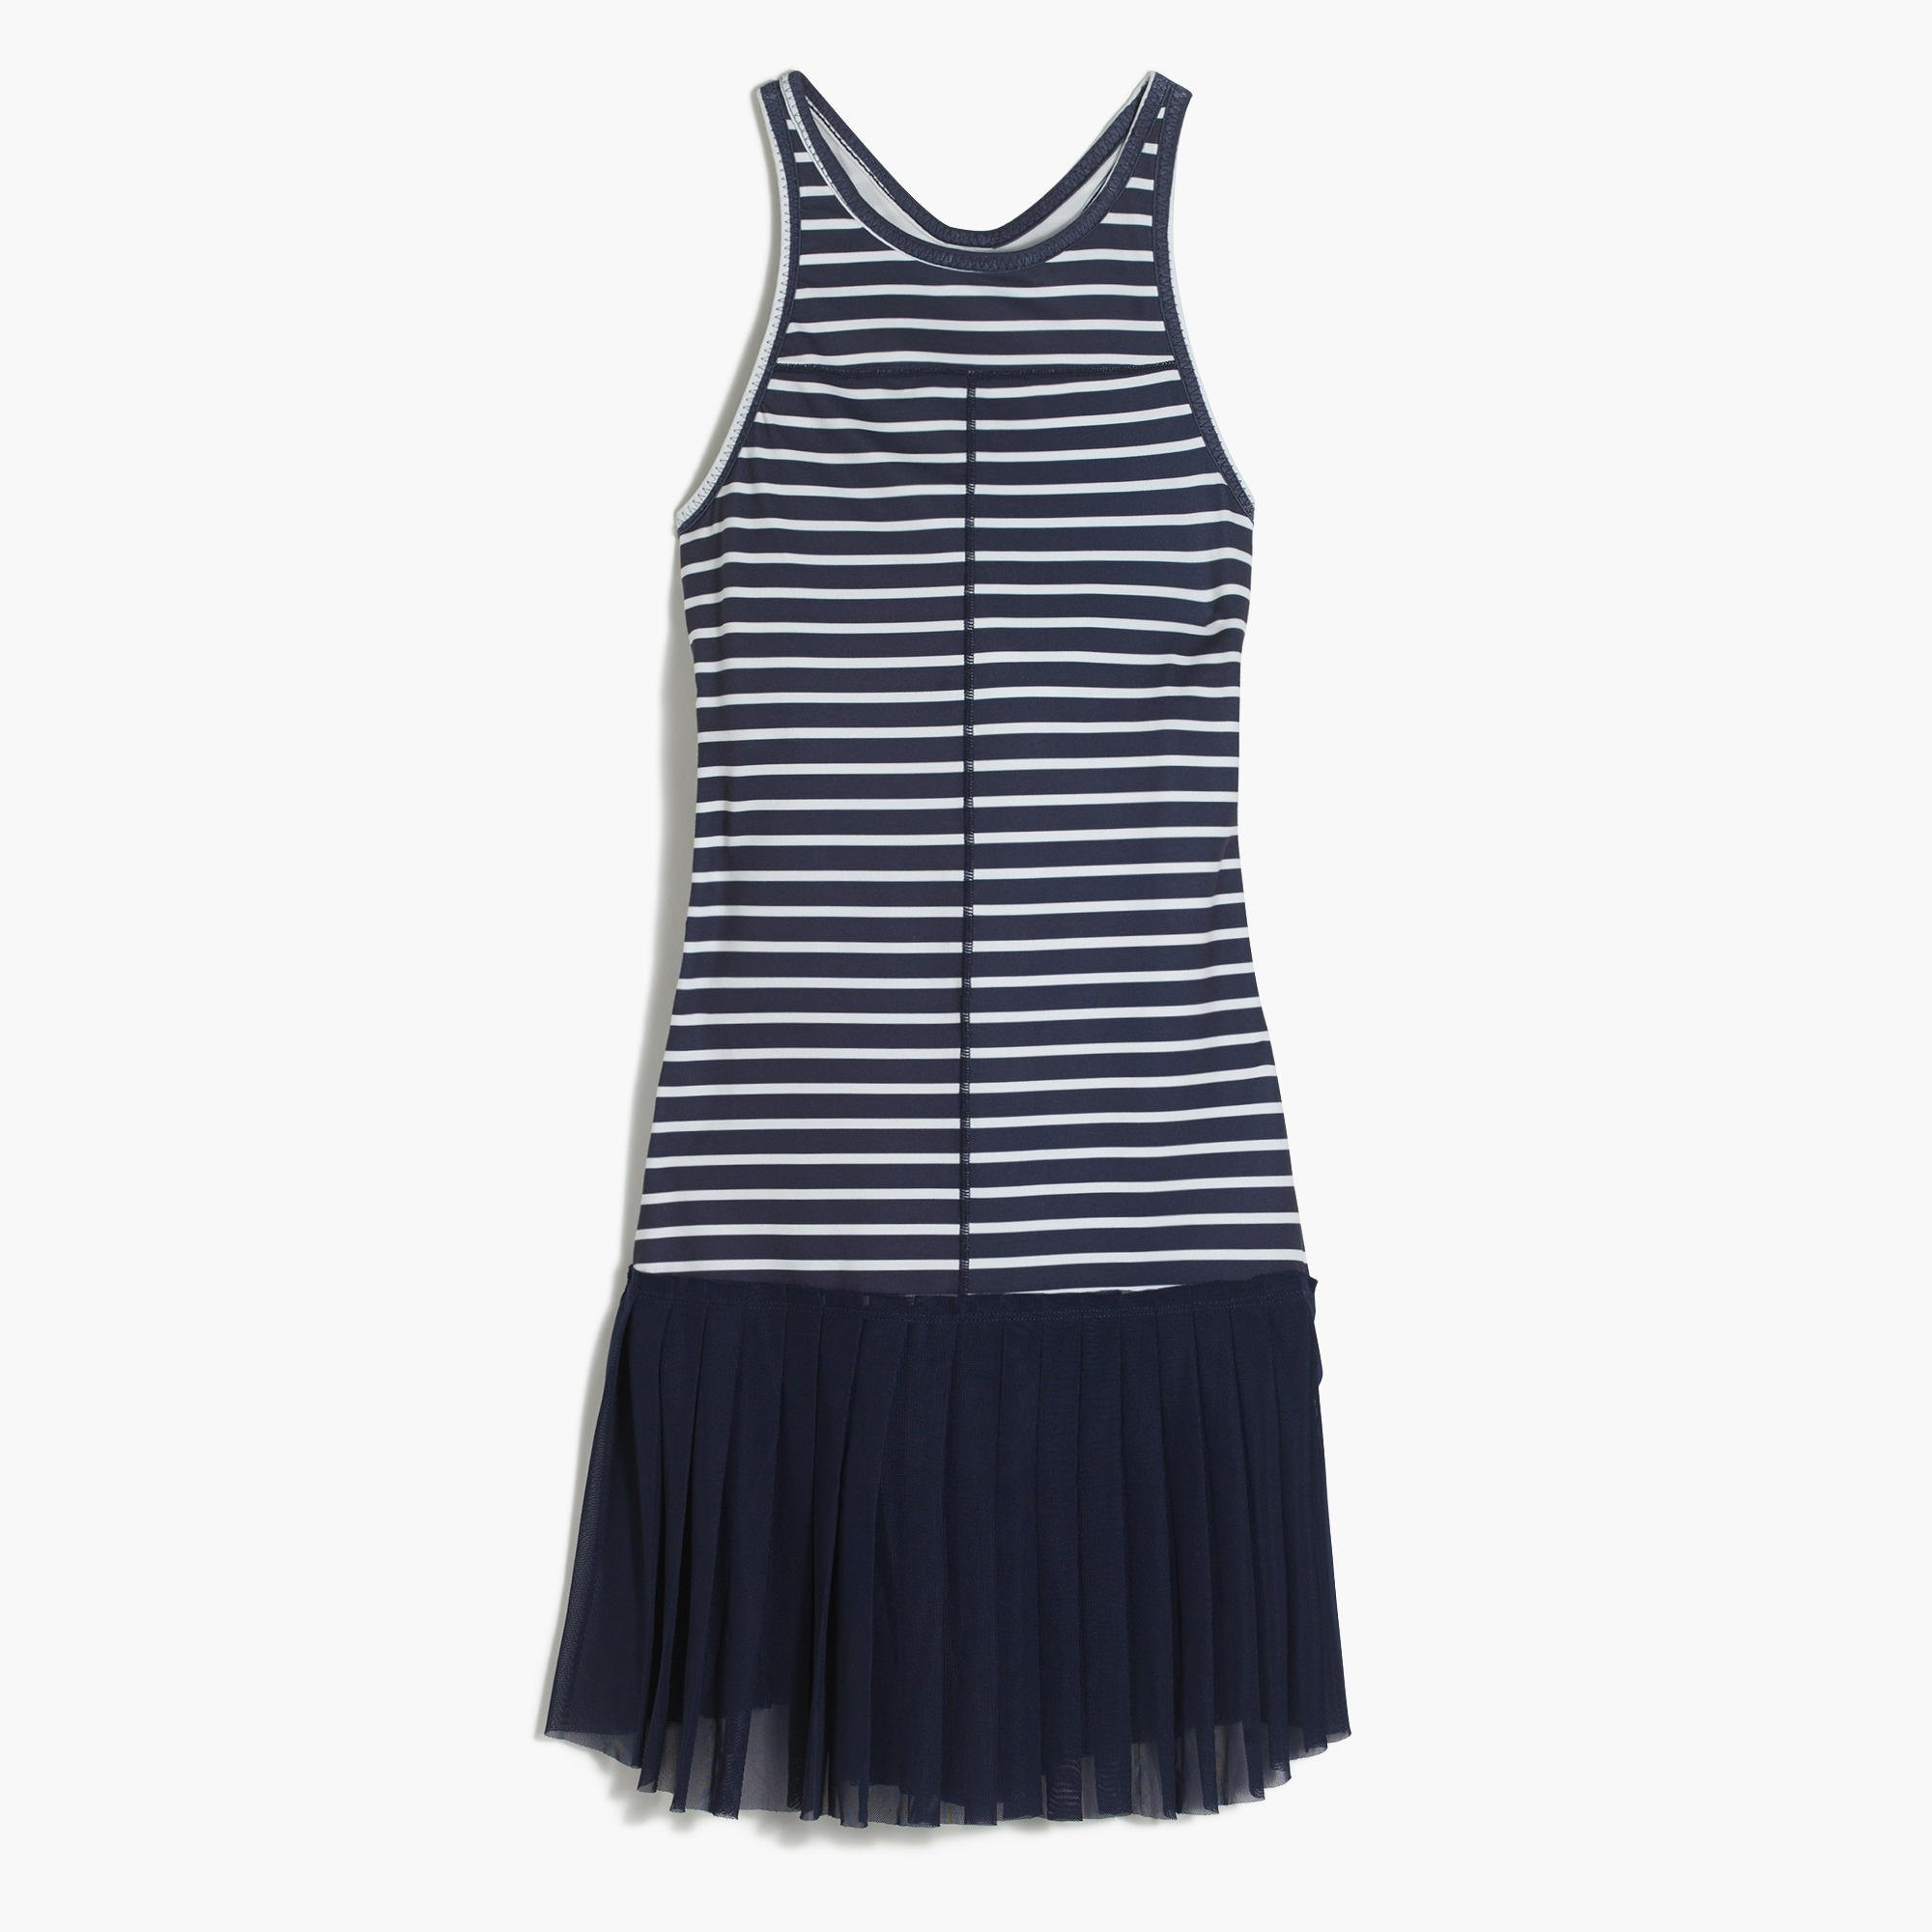 Image 2 for New Balance® for J.Crew tennis dress in stripe